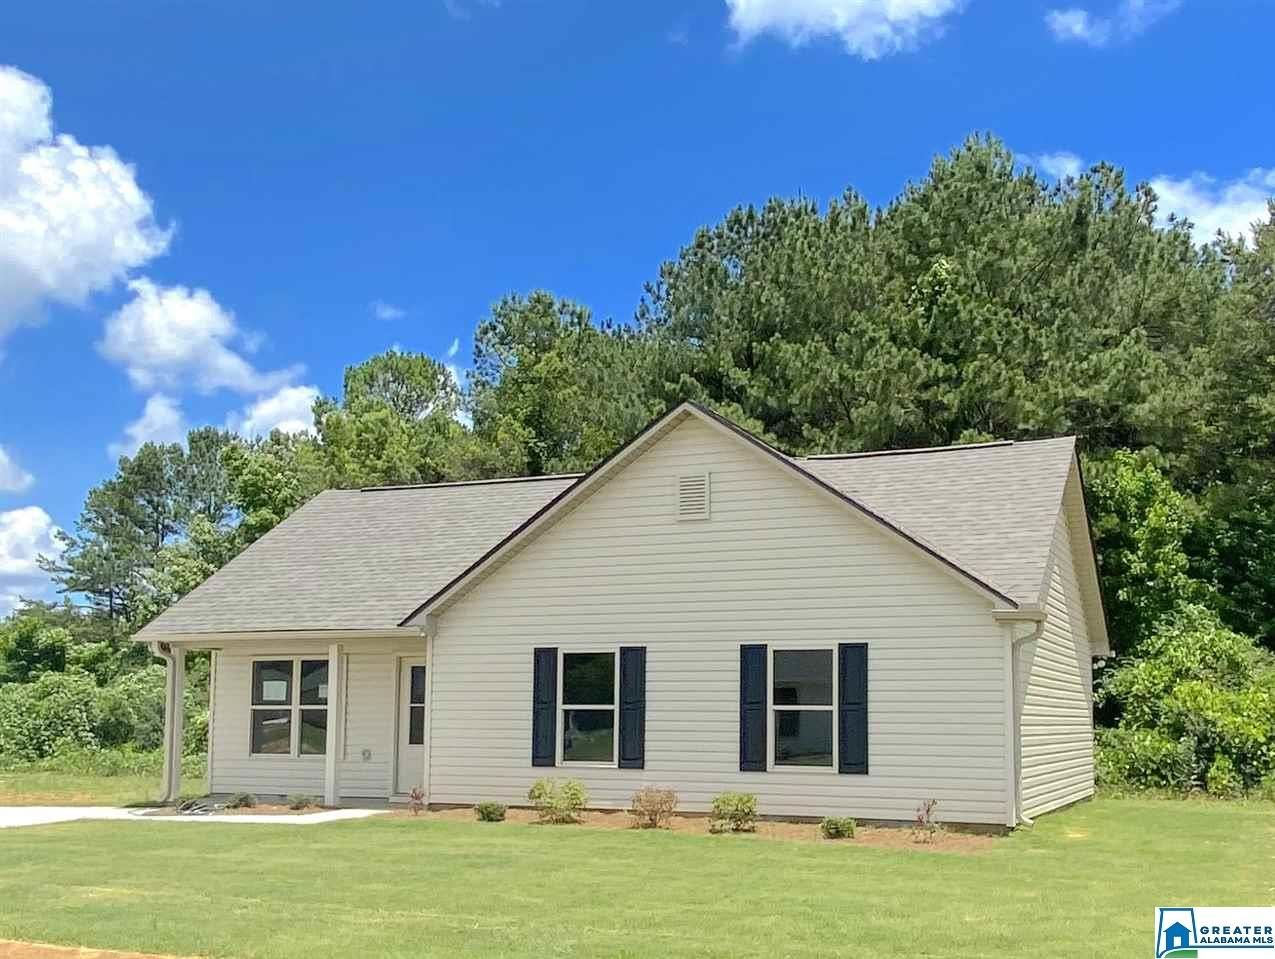 270 SUNLIGHT CIR, Talladega, AL 35160 - MLS#: 878646